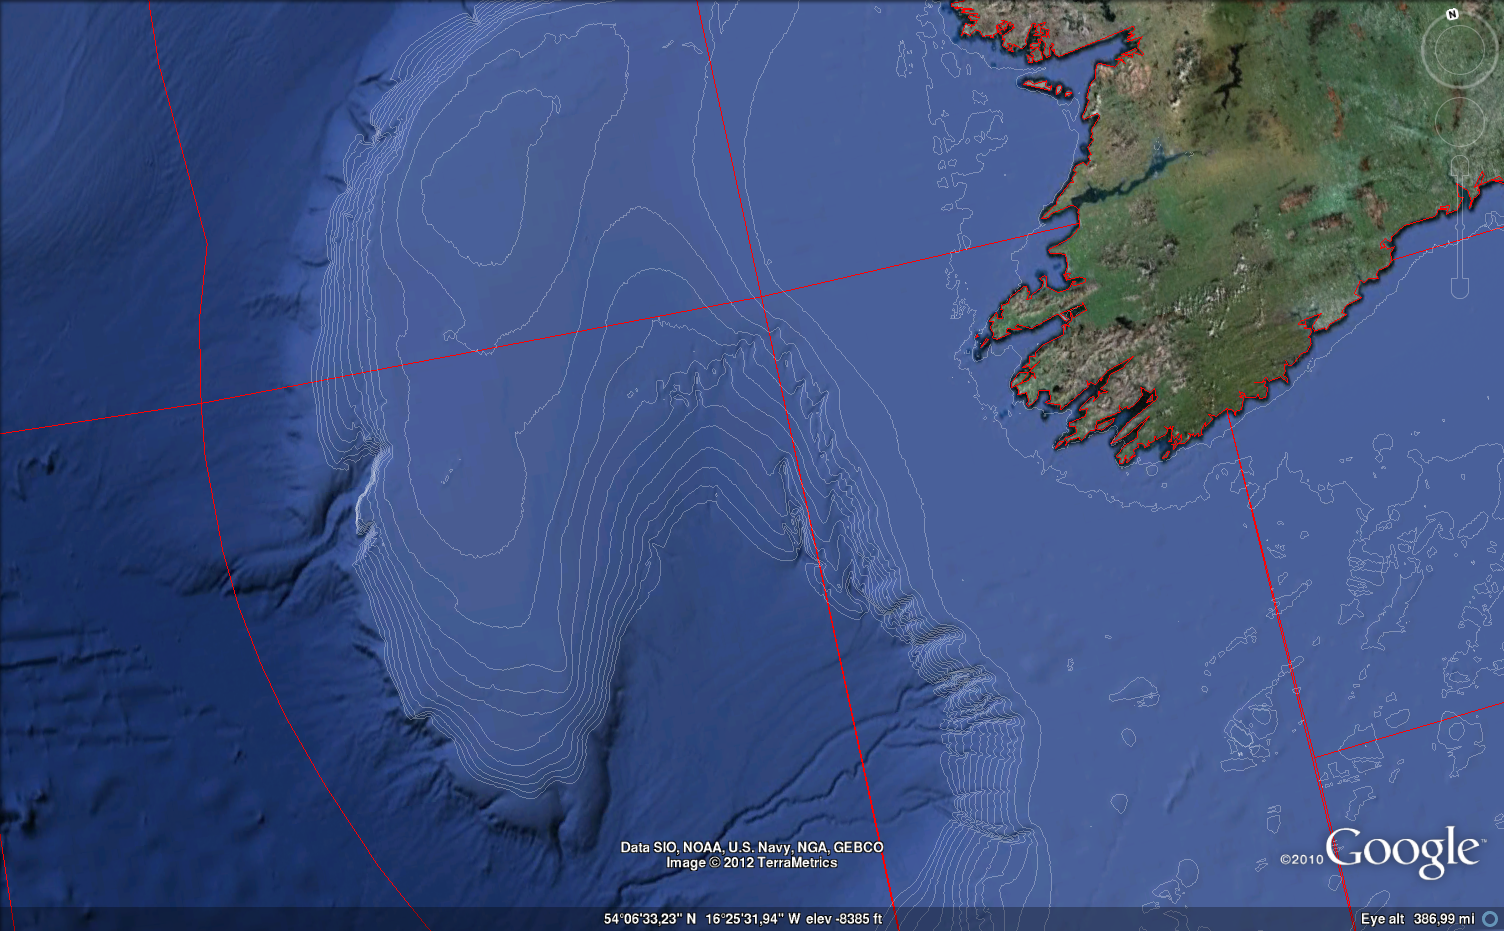 Google Earth And Ocean Depth Contours Rbloggers - Map showing ocean depths